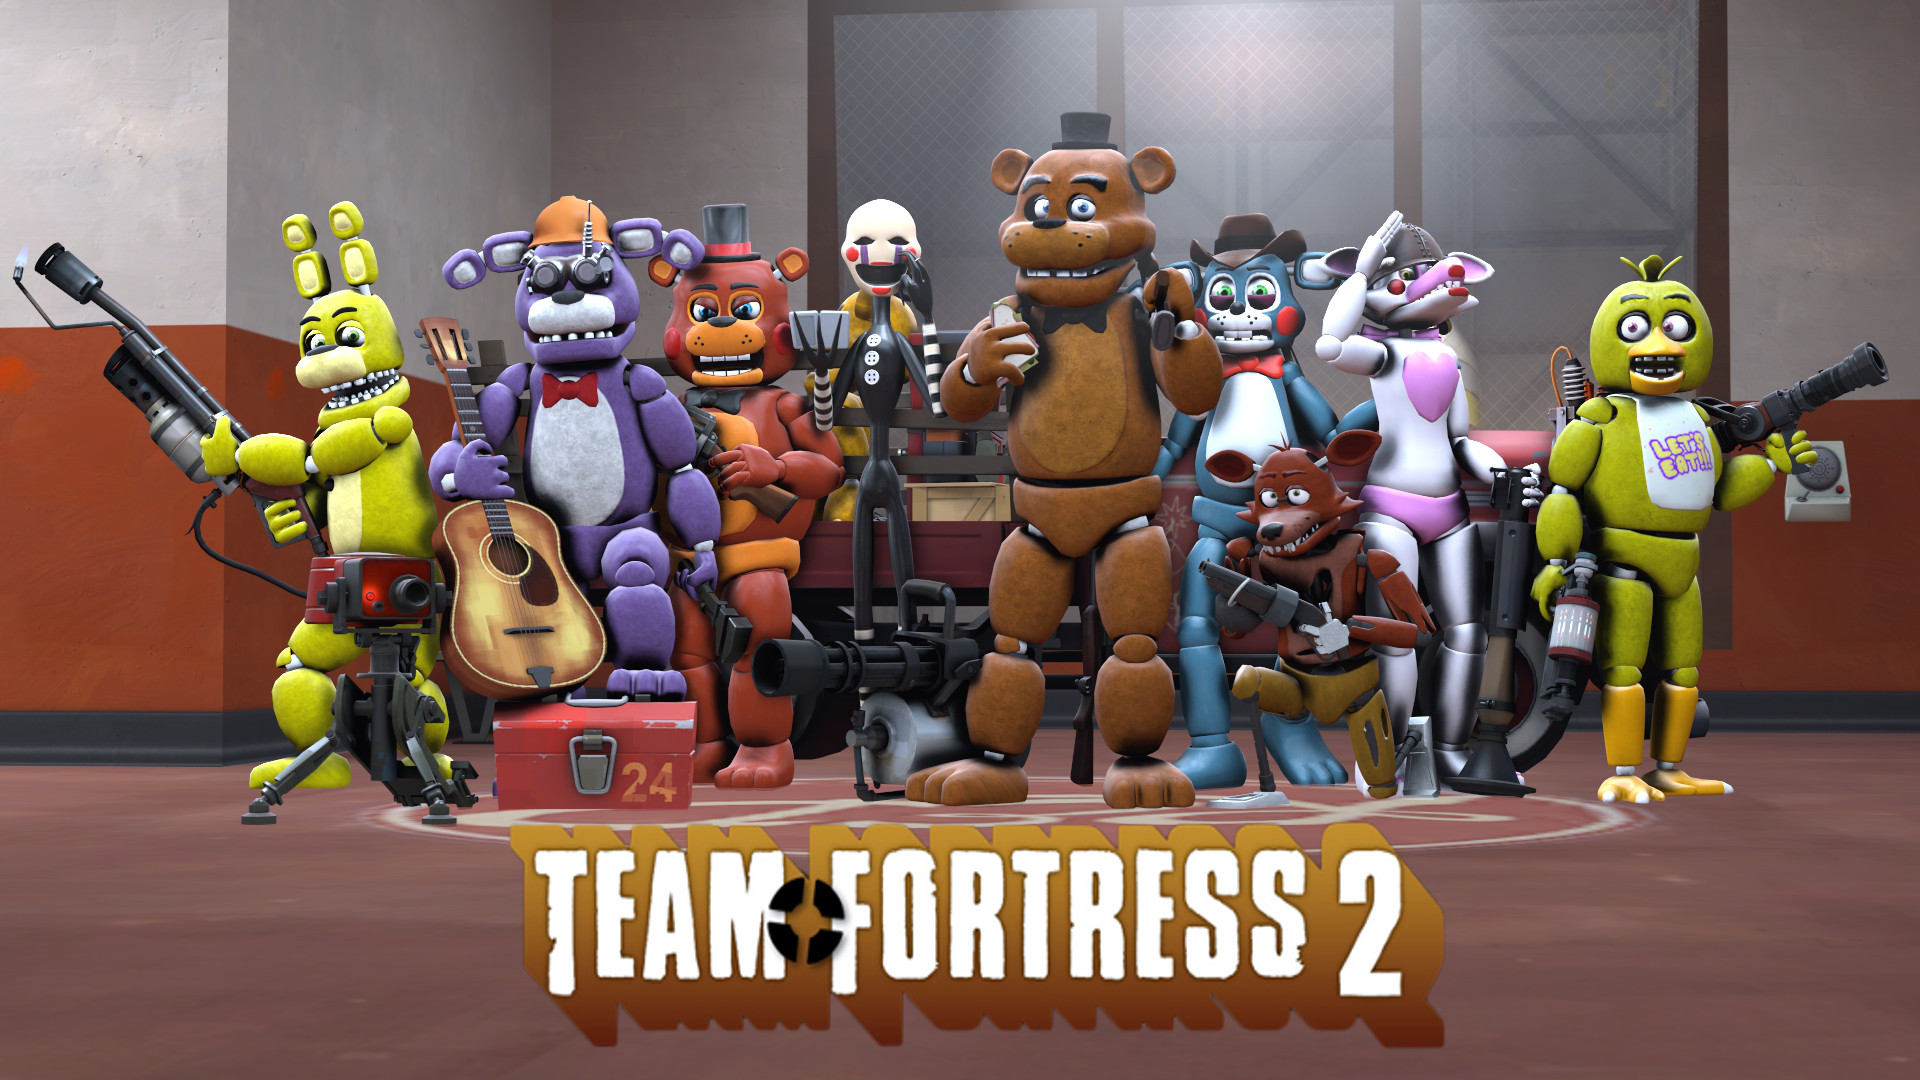 1920x1080 FNAF and TF2 Crossover. by TalonDang on DeviantArt